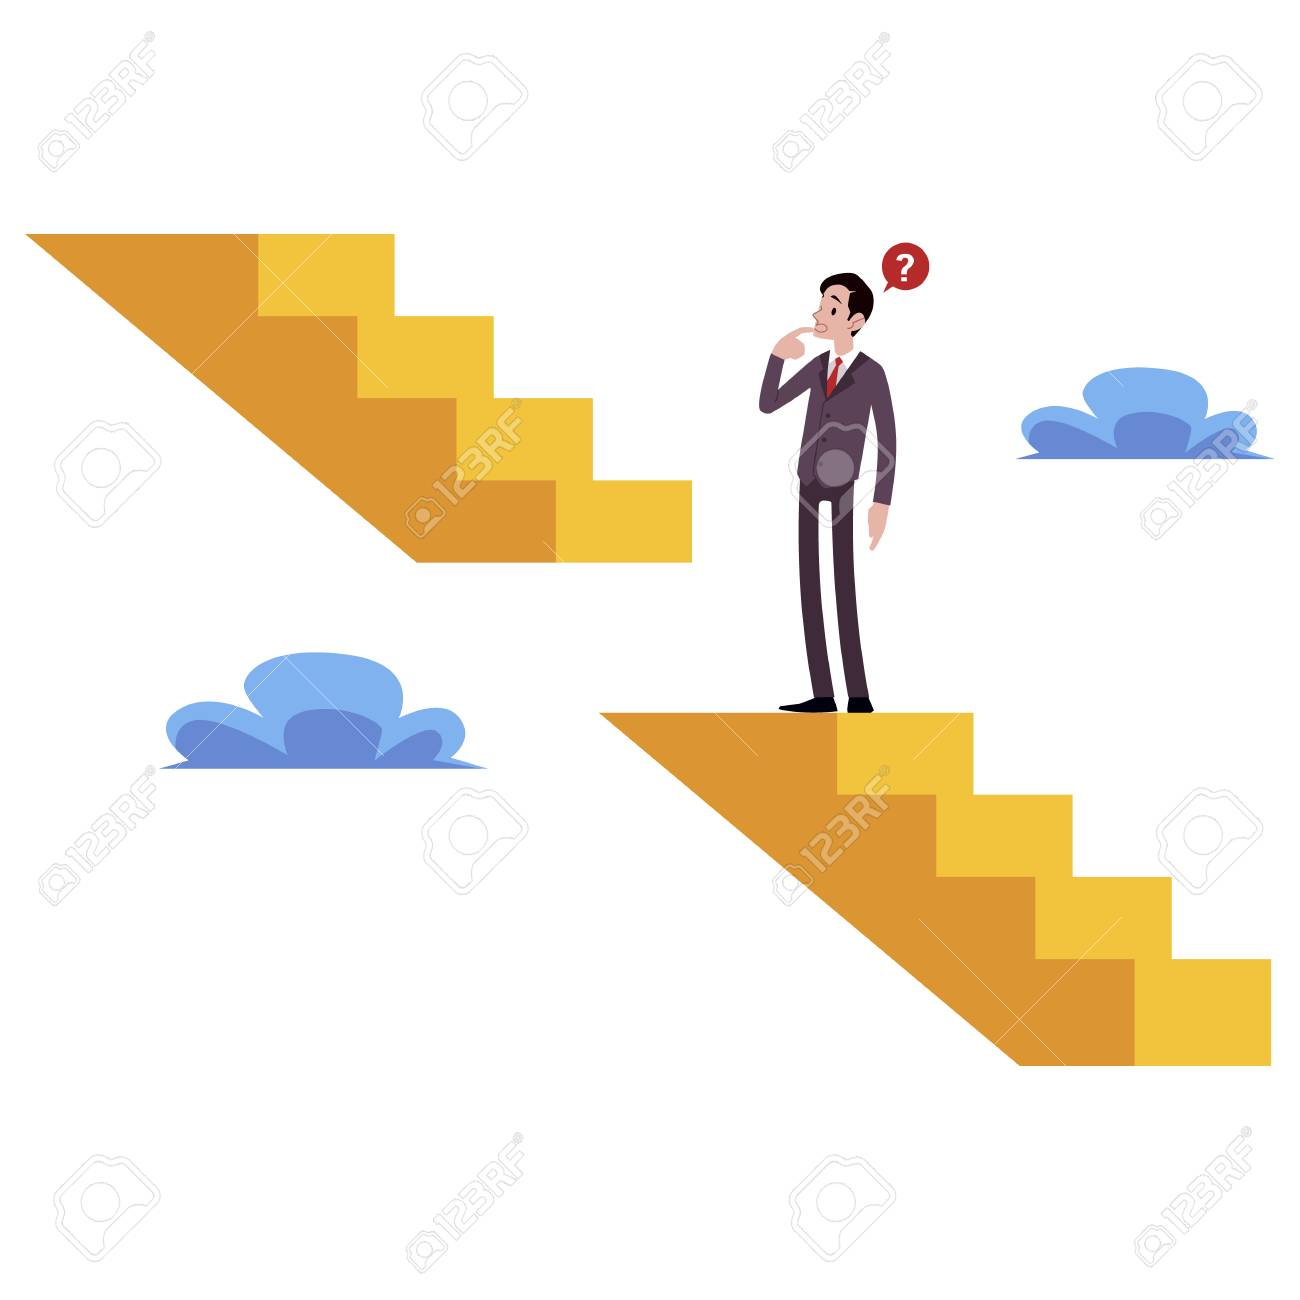 Businessman stands on broken stairs thinking how get next level cartoon style, vector illustration isolated on white background. Male climbing the career staircase, business challenge concept - 122414889